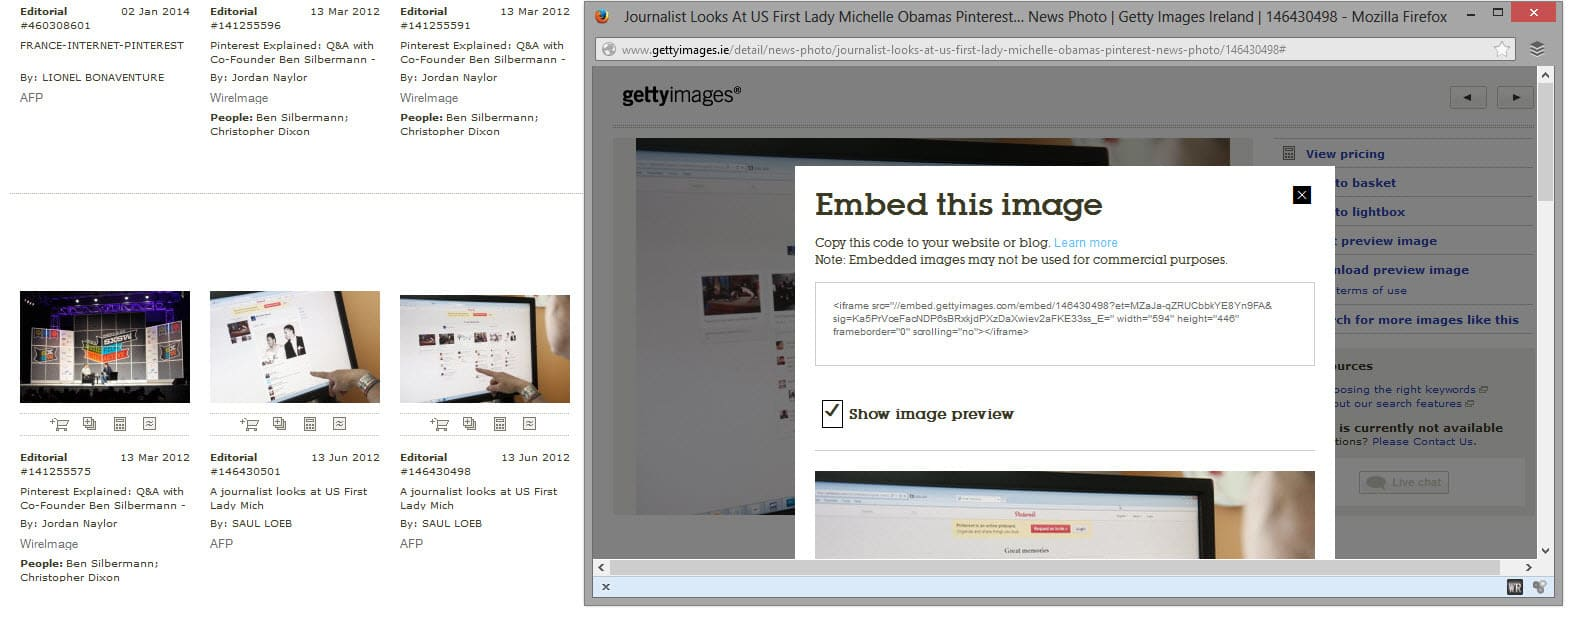 Getty Images makes embed options available for personal blogs and non commercial articles on websites